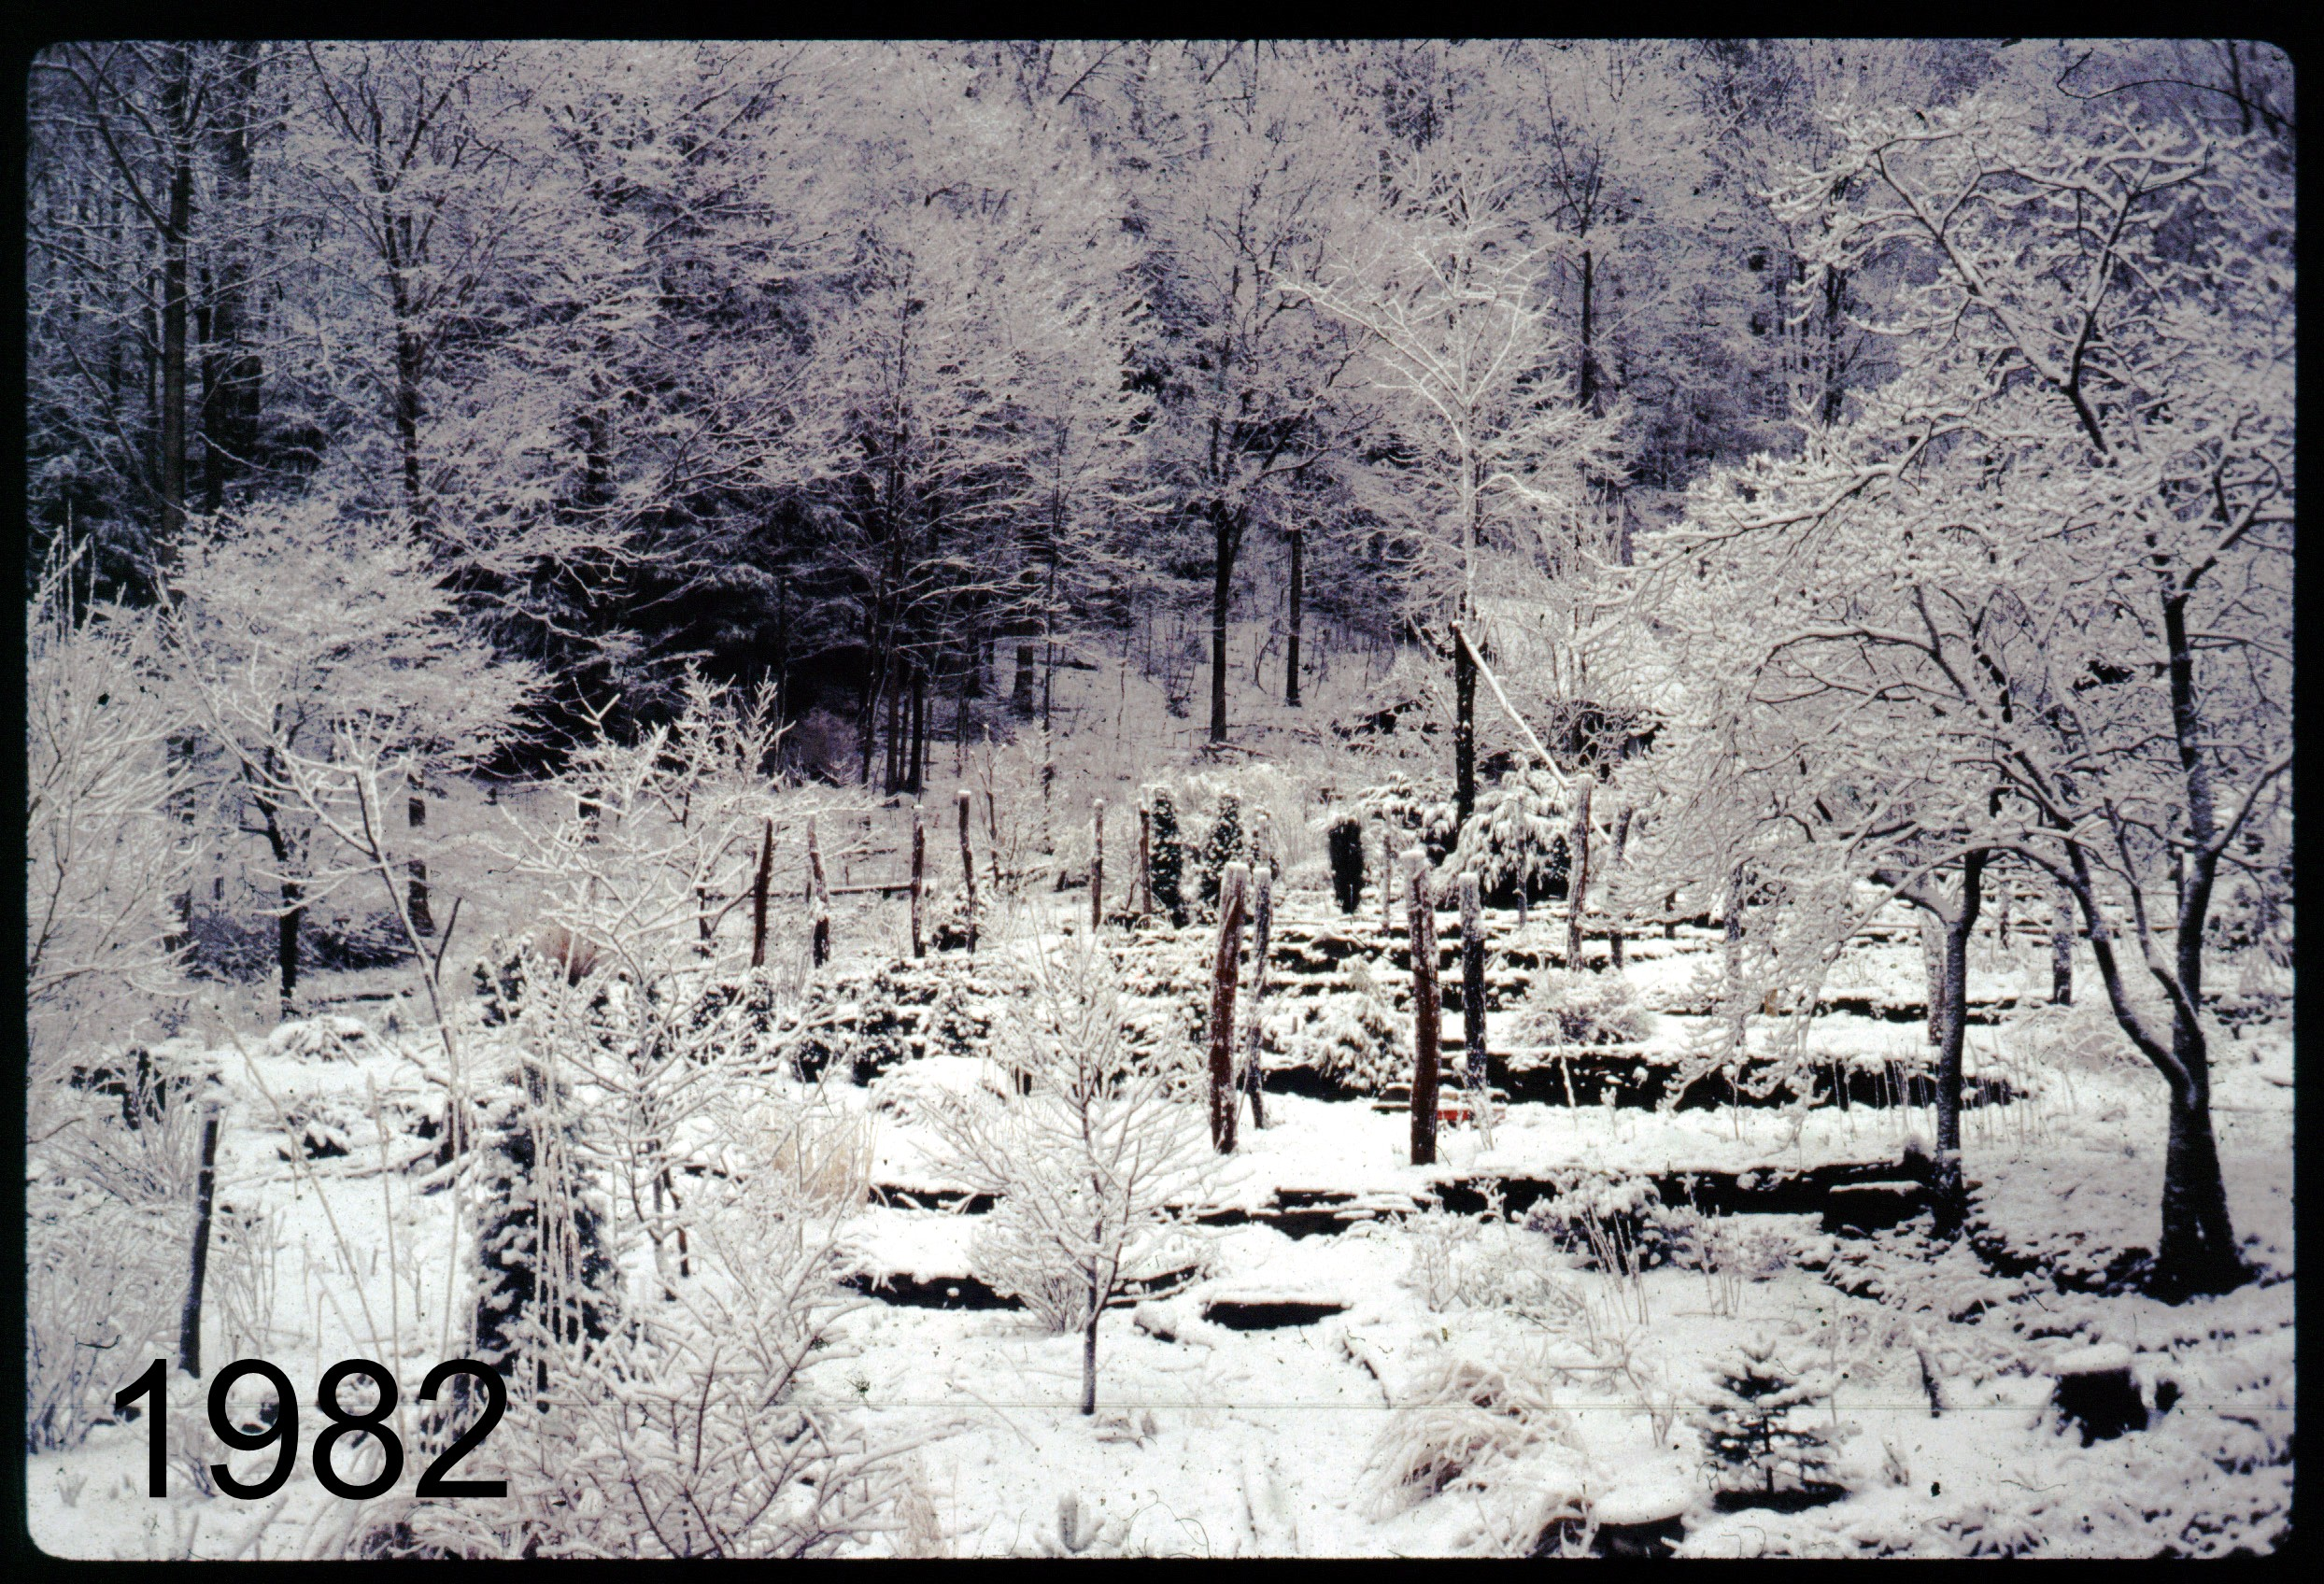 1982 snow view up gdn.jpg